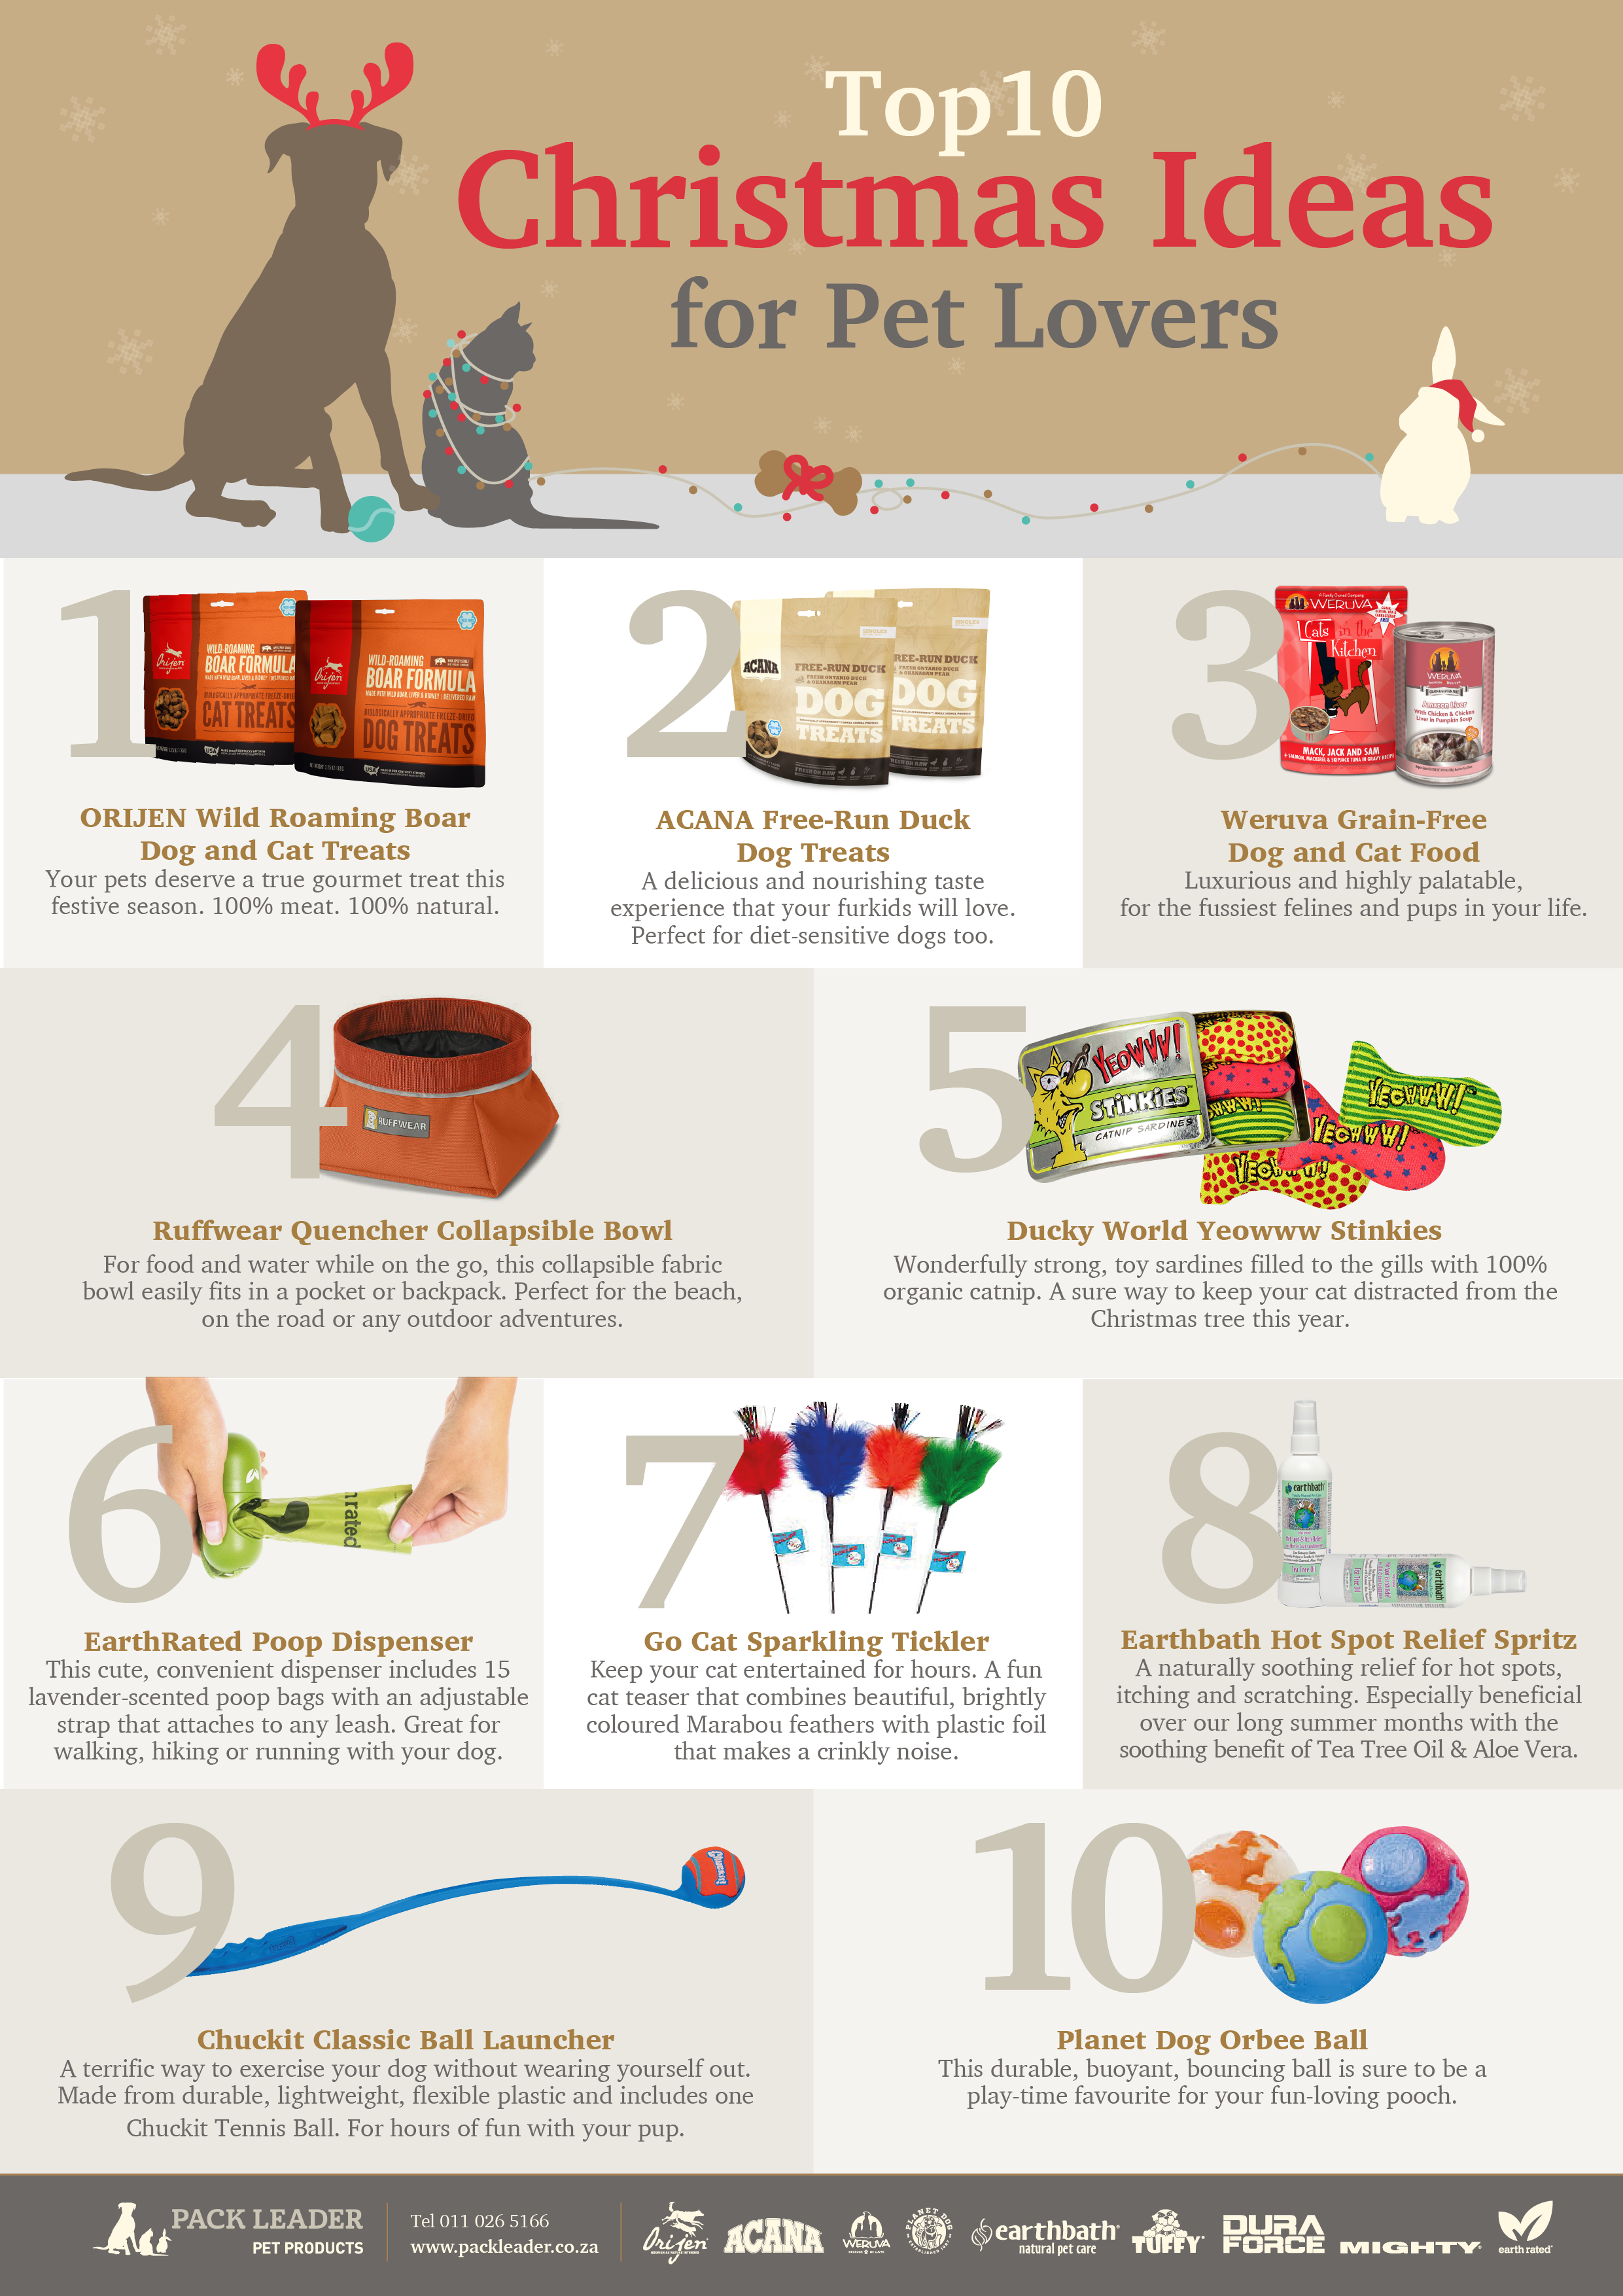 Top 10 Christmas Ideas for Pet Lovers